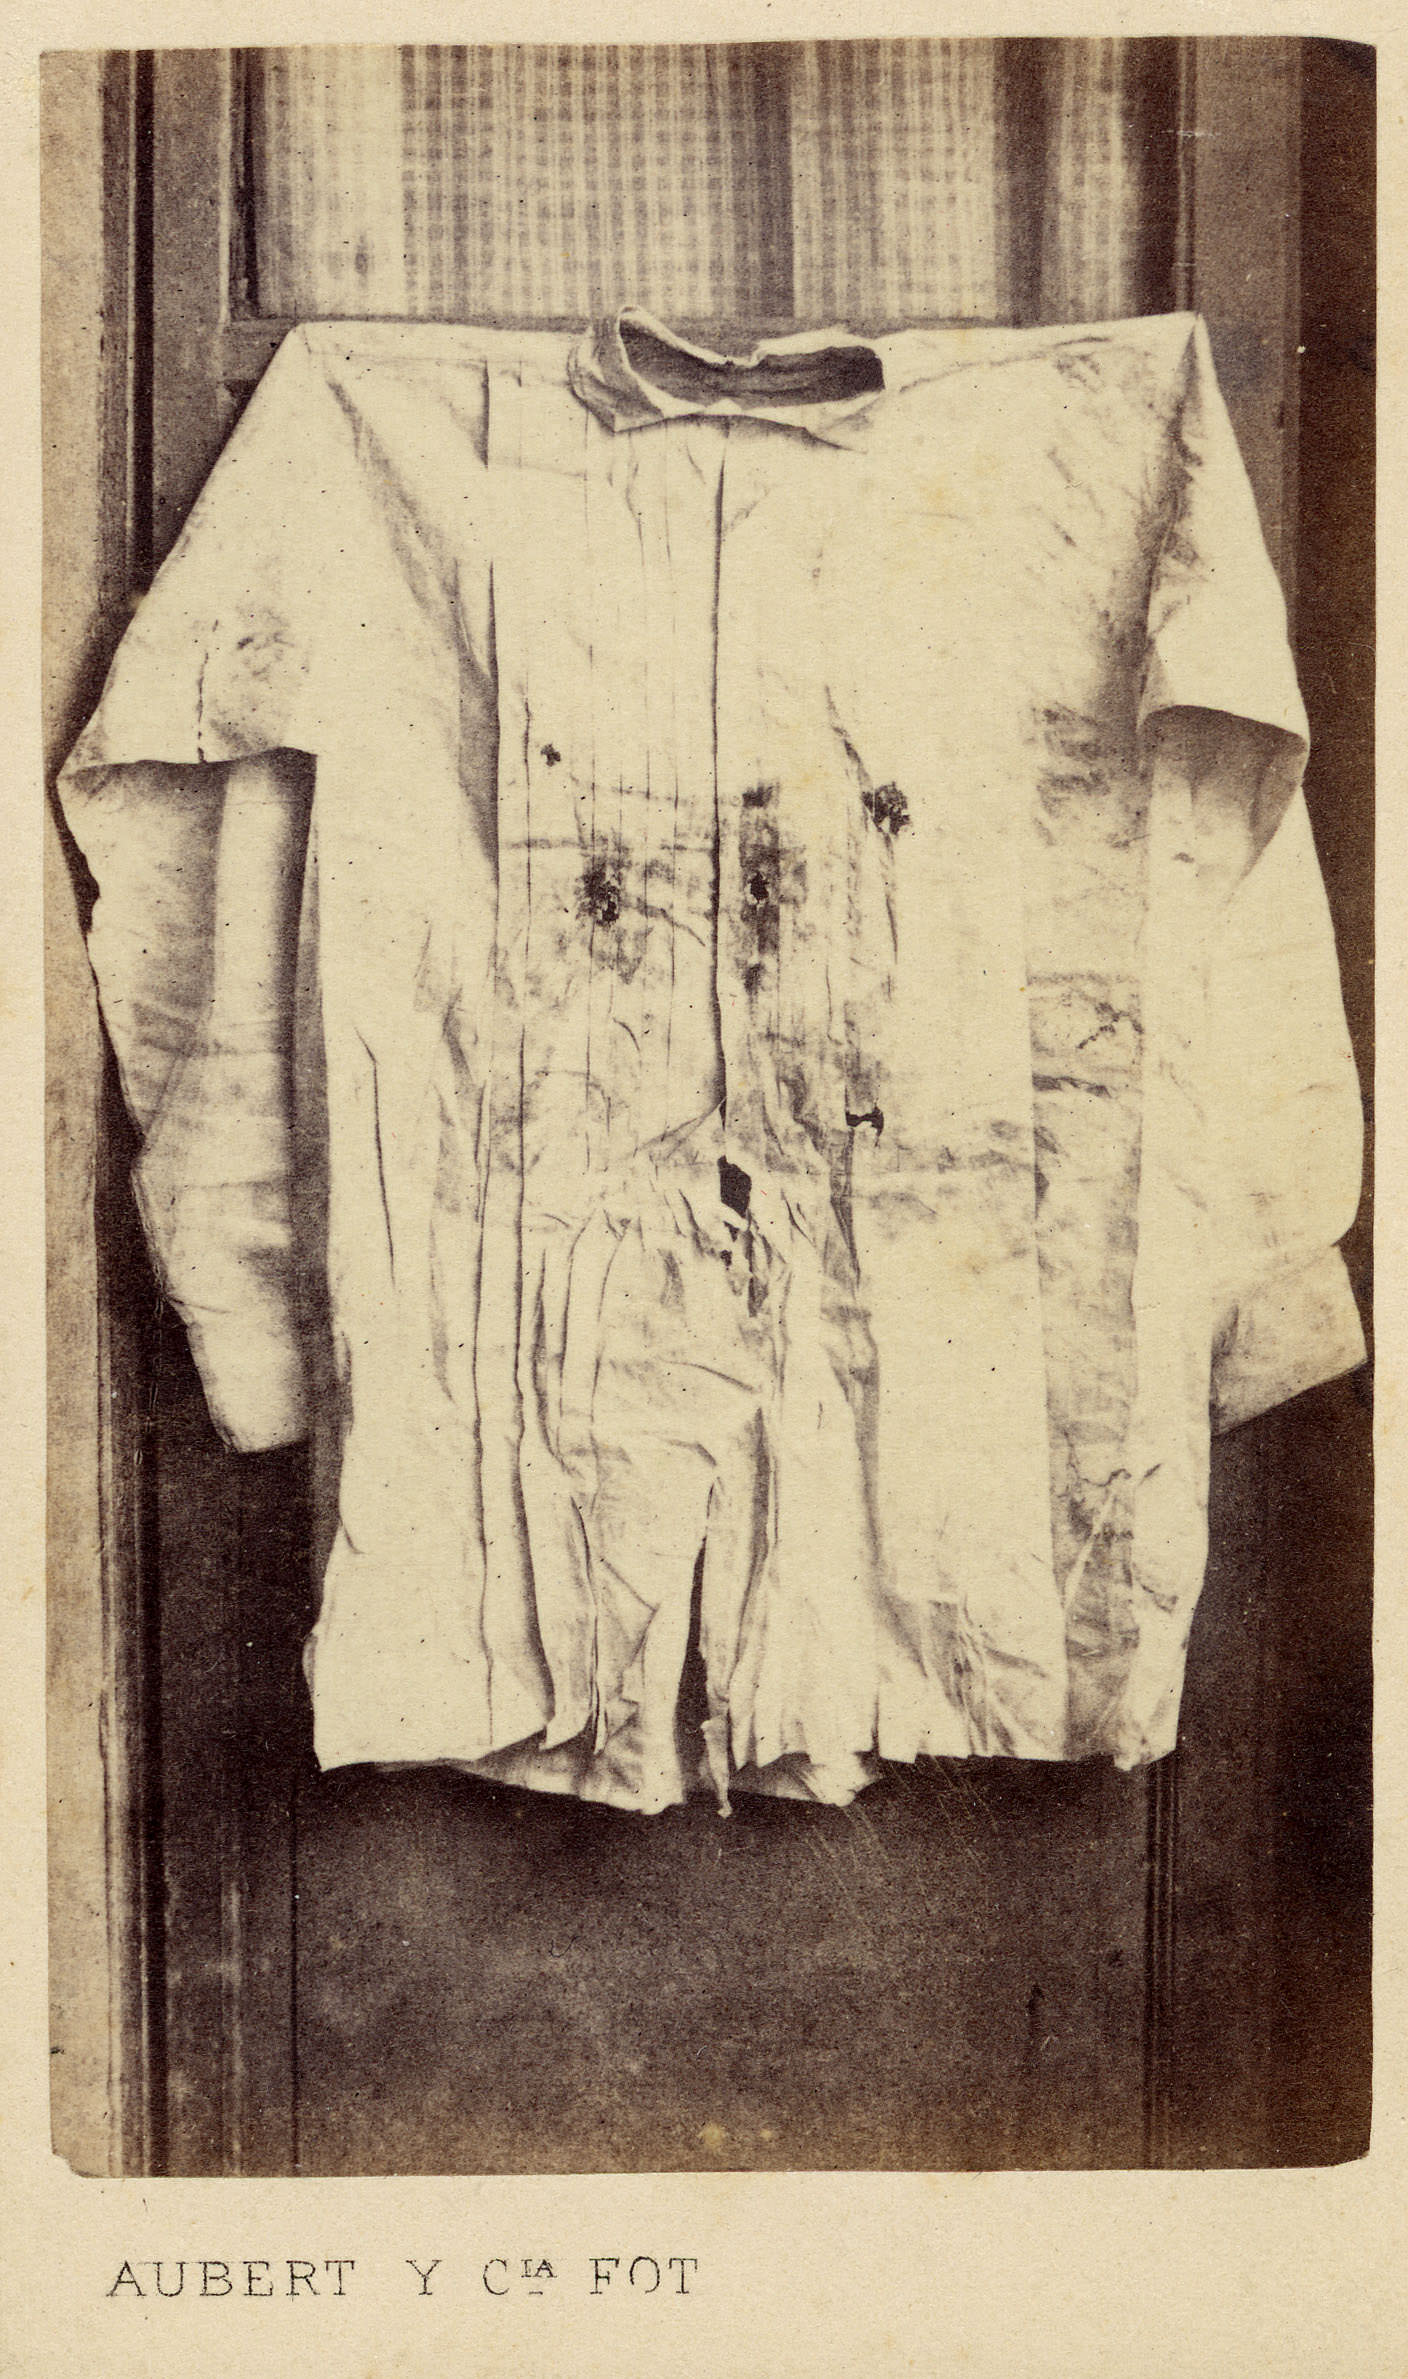 """Maximilian von Habsburg's Shirt, 1867"" Carte-de-visite photograph, Mexico Maximilian era Carte-de-visite Collection (PICT 997-013-0018), Center for Southwest Research, University Libraries, University of New Mexico"